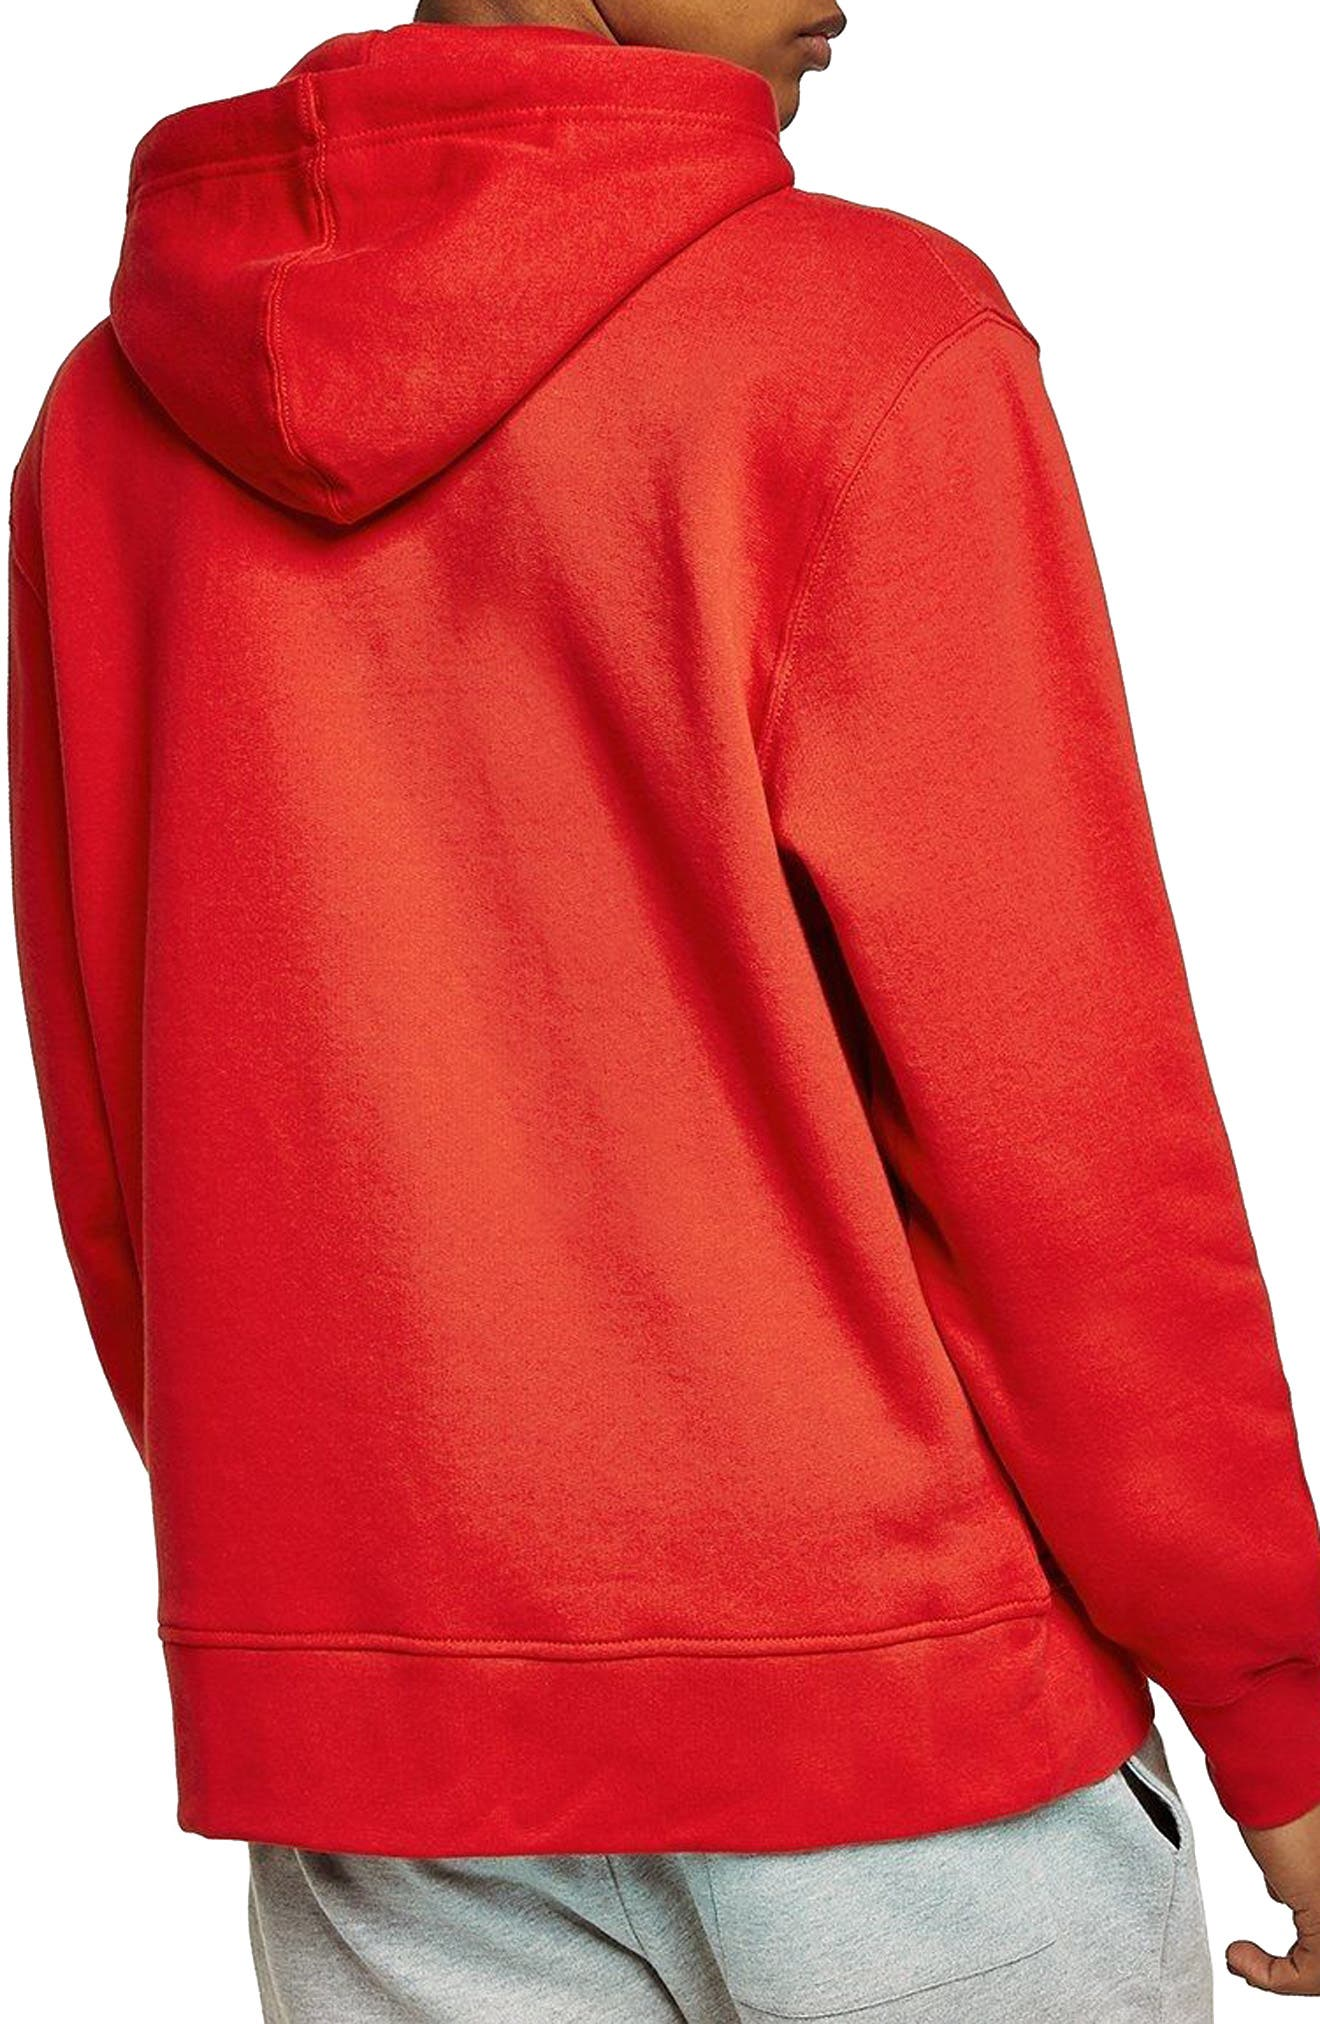 Classic Fit Tristan Thanks Embroidered Hoodie,                             Alternate thumbnail 2, color,                             Red Multi